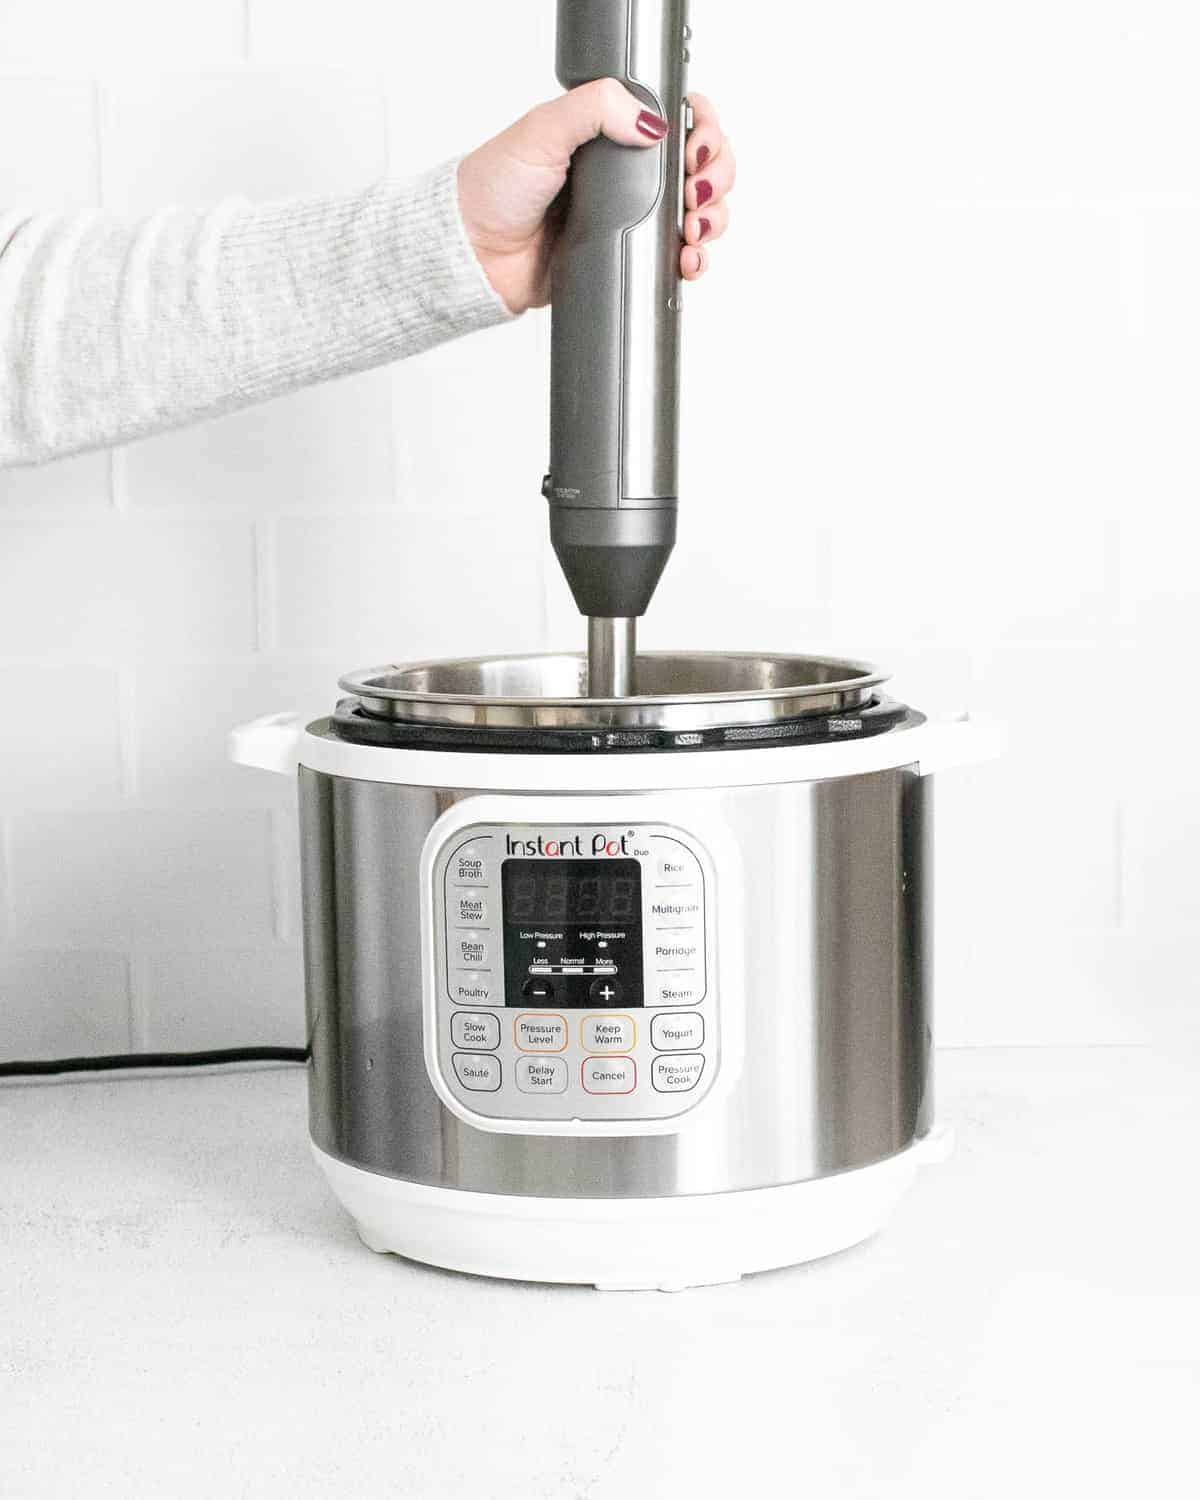 Soup in an Instant Pot being pureed.